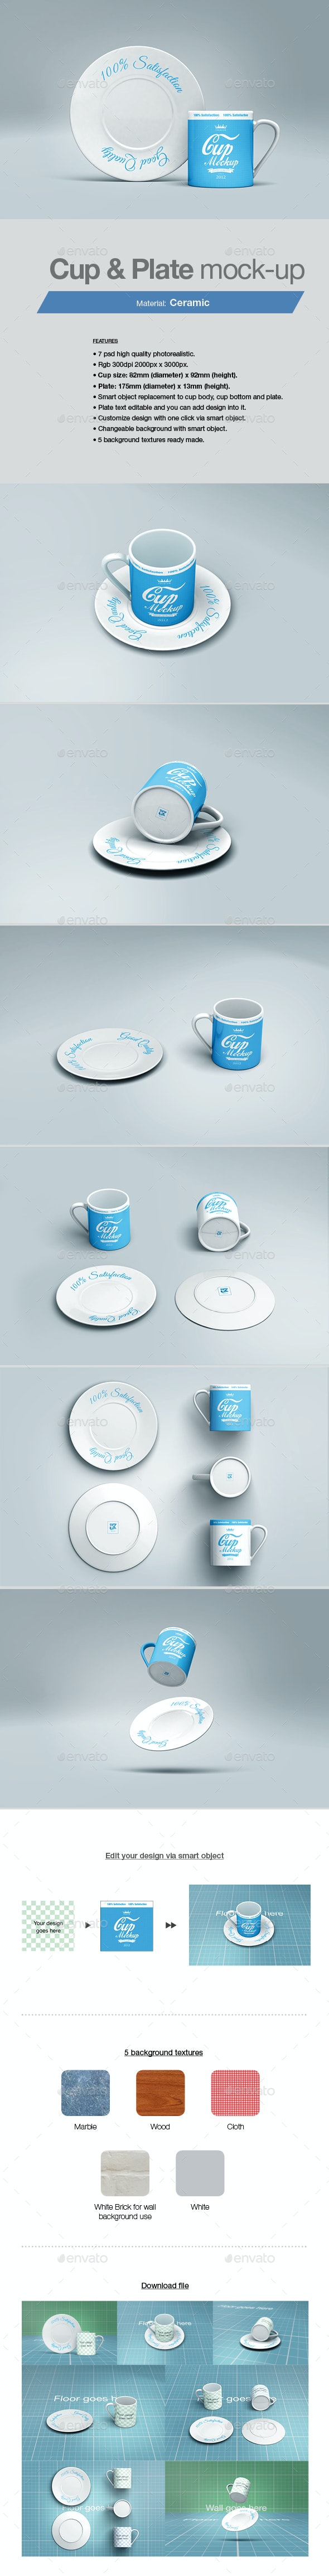 Cup & Plate Mock-up - Packaging Product Mock-Ups